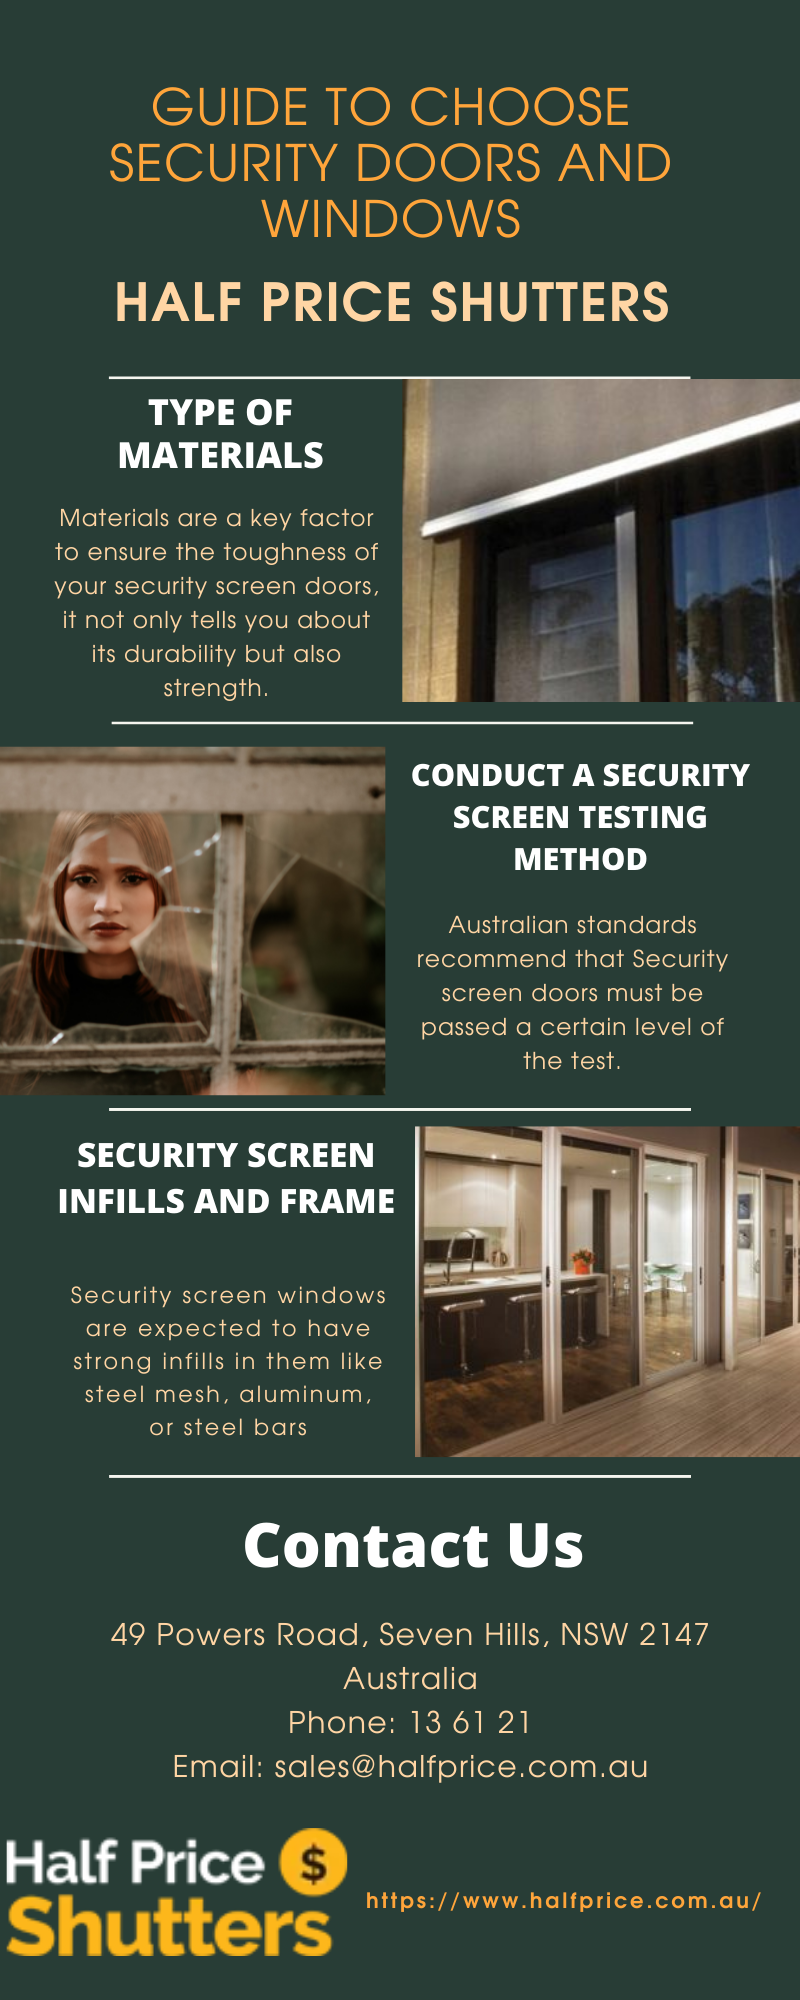 GUIDE TO CHOOSE SECURITY DOORS AND WINDOWS